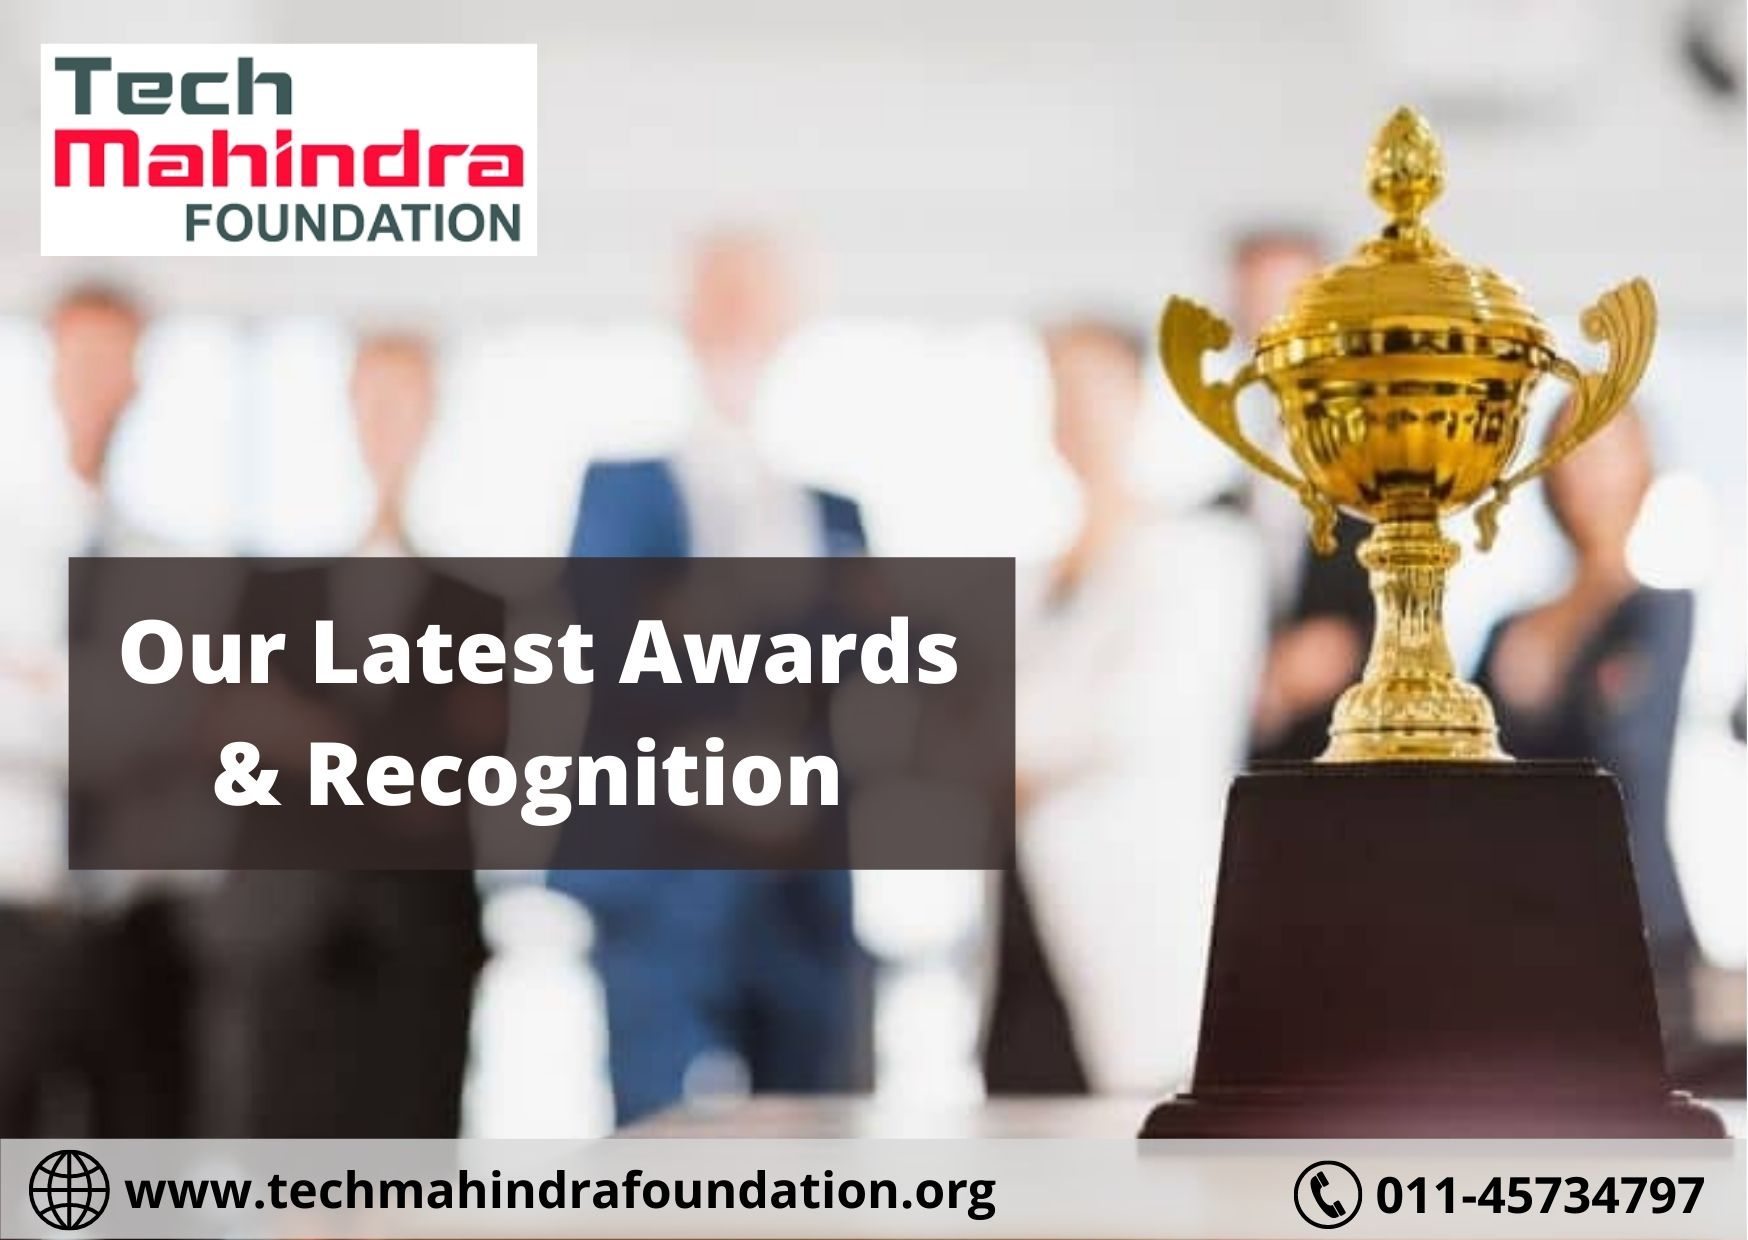 Our Latest Awards & Recognition | Tech Mahindra Foundation